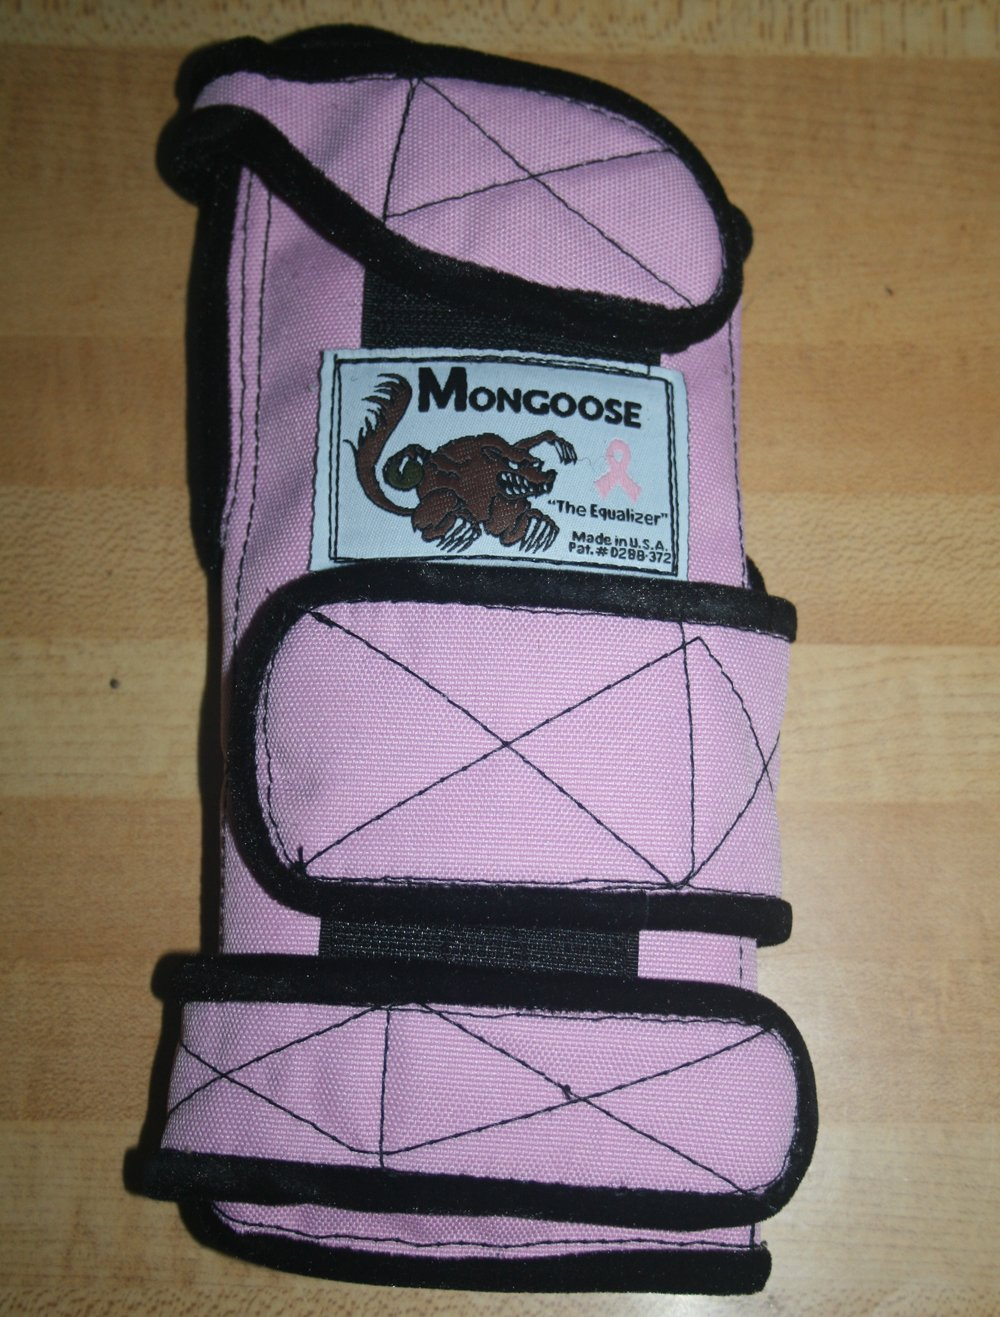 Mongoose ''Equalizer Bowling Wrist Support Right Hand, Medium, Pink